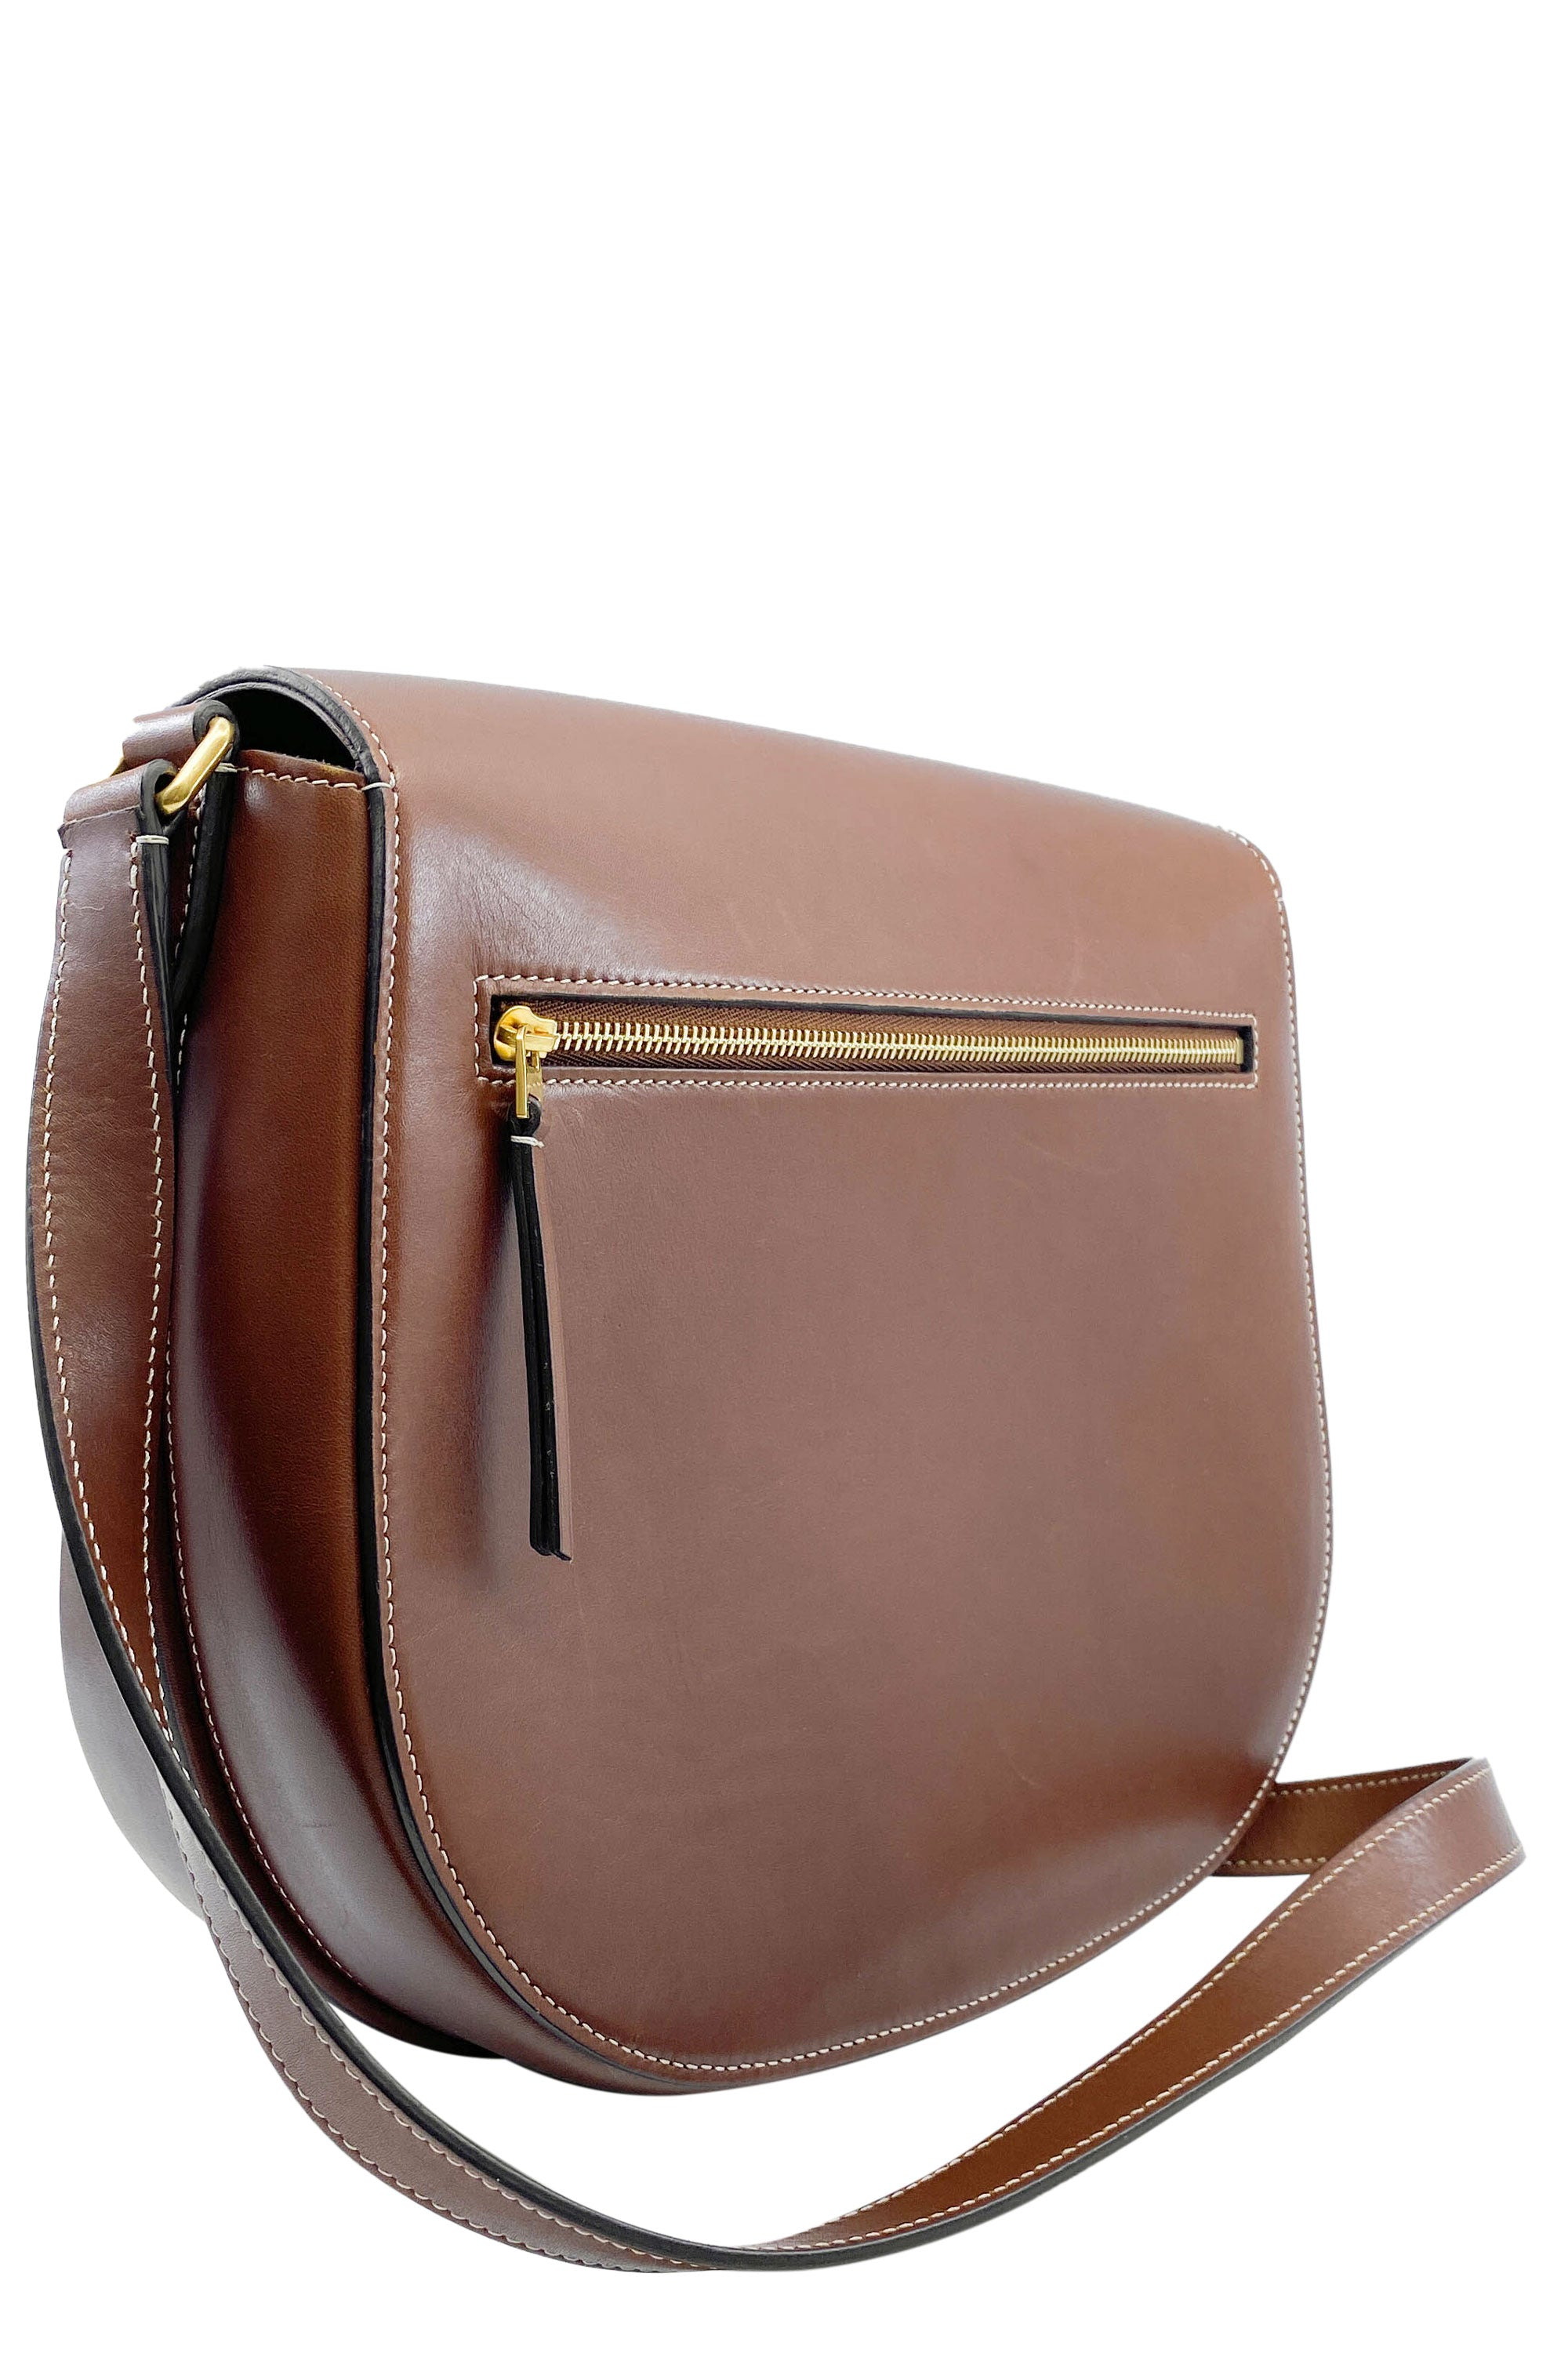 CÉLINE Trotteur Medium Satchel Brown